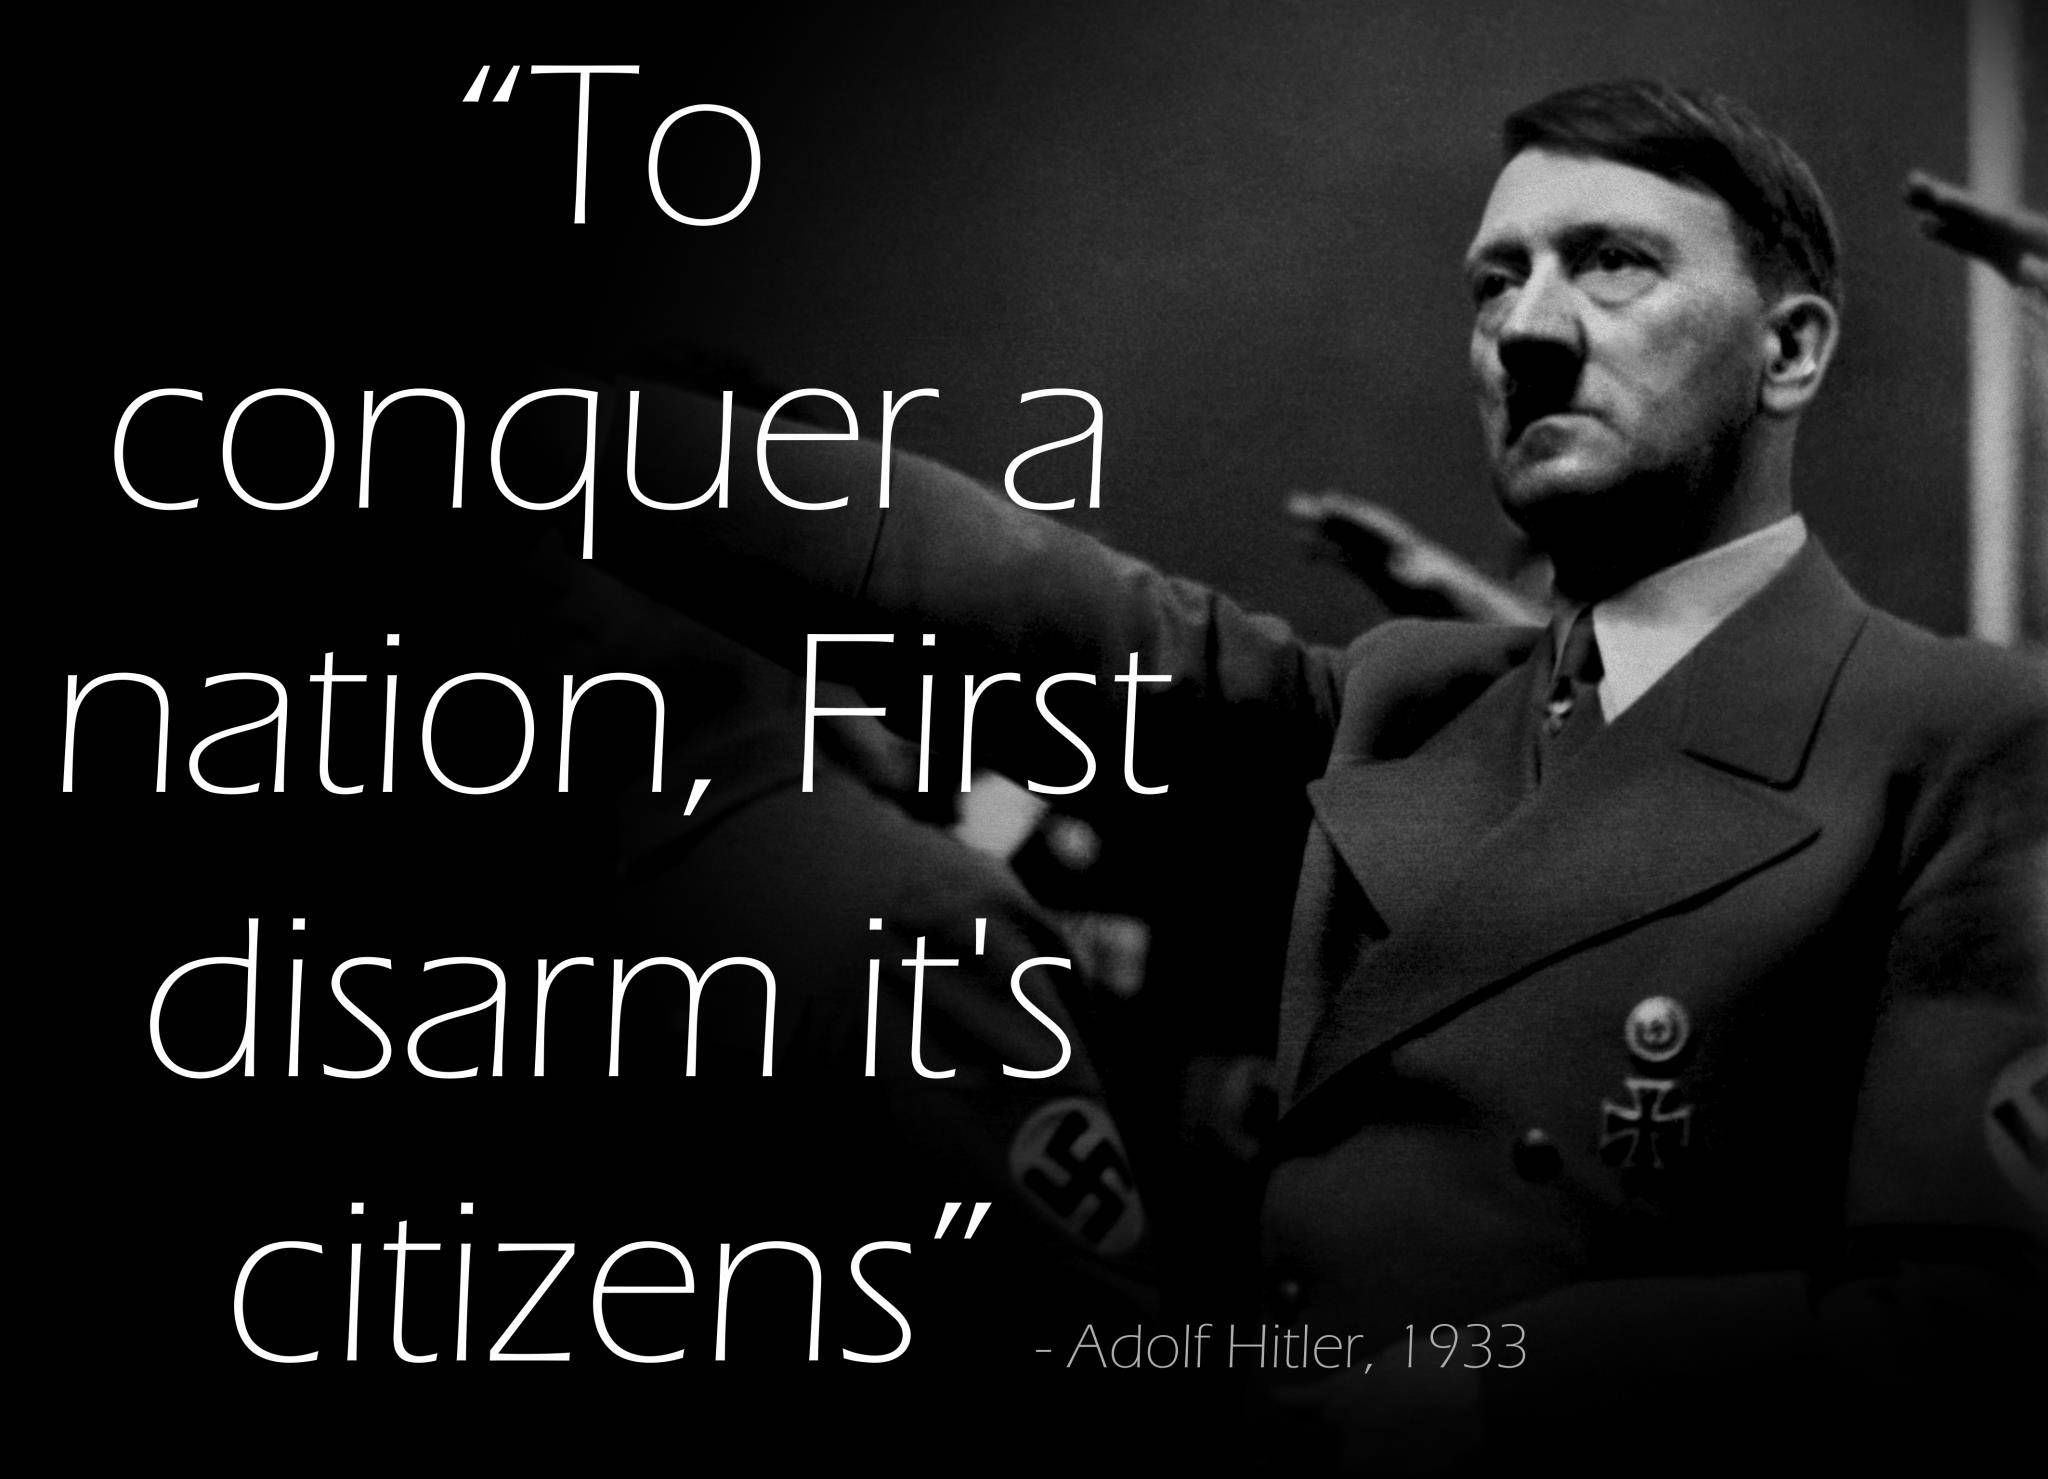 Gun Control Quotes Famousquotes  Famous Hitler Quotes  Quotes Pics  Quotes